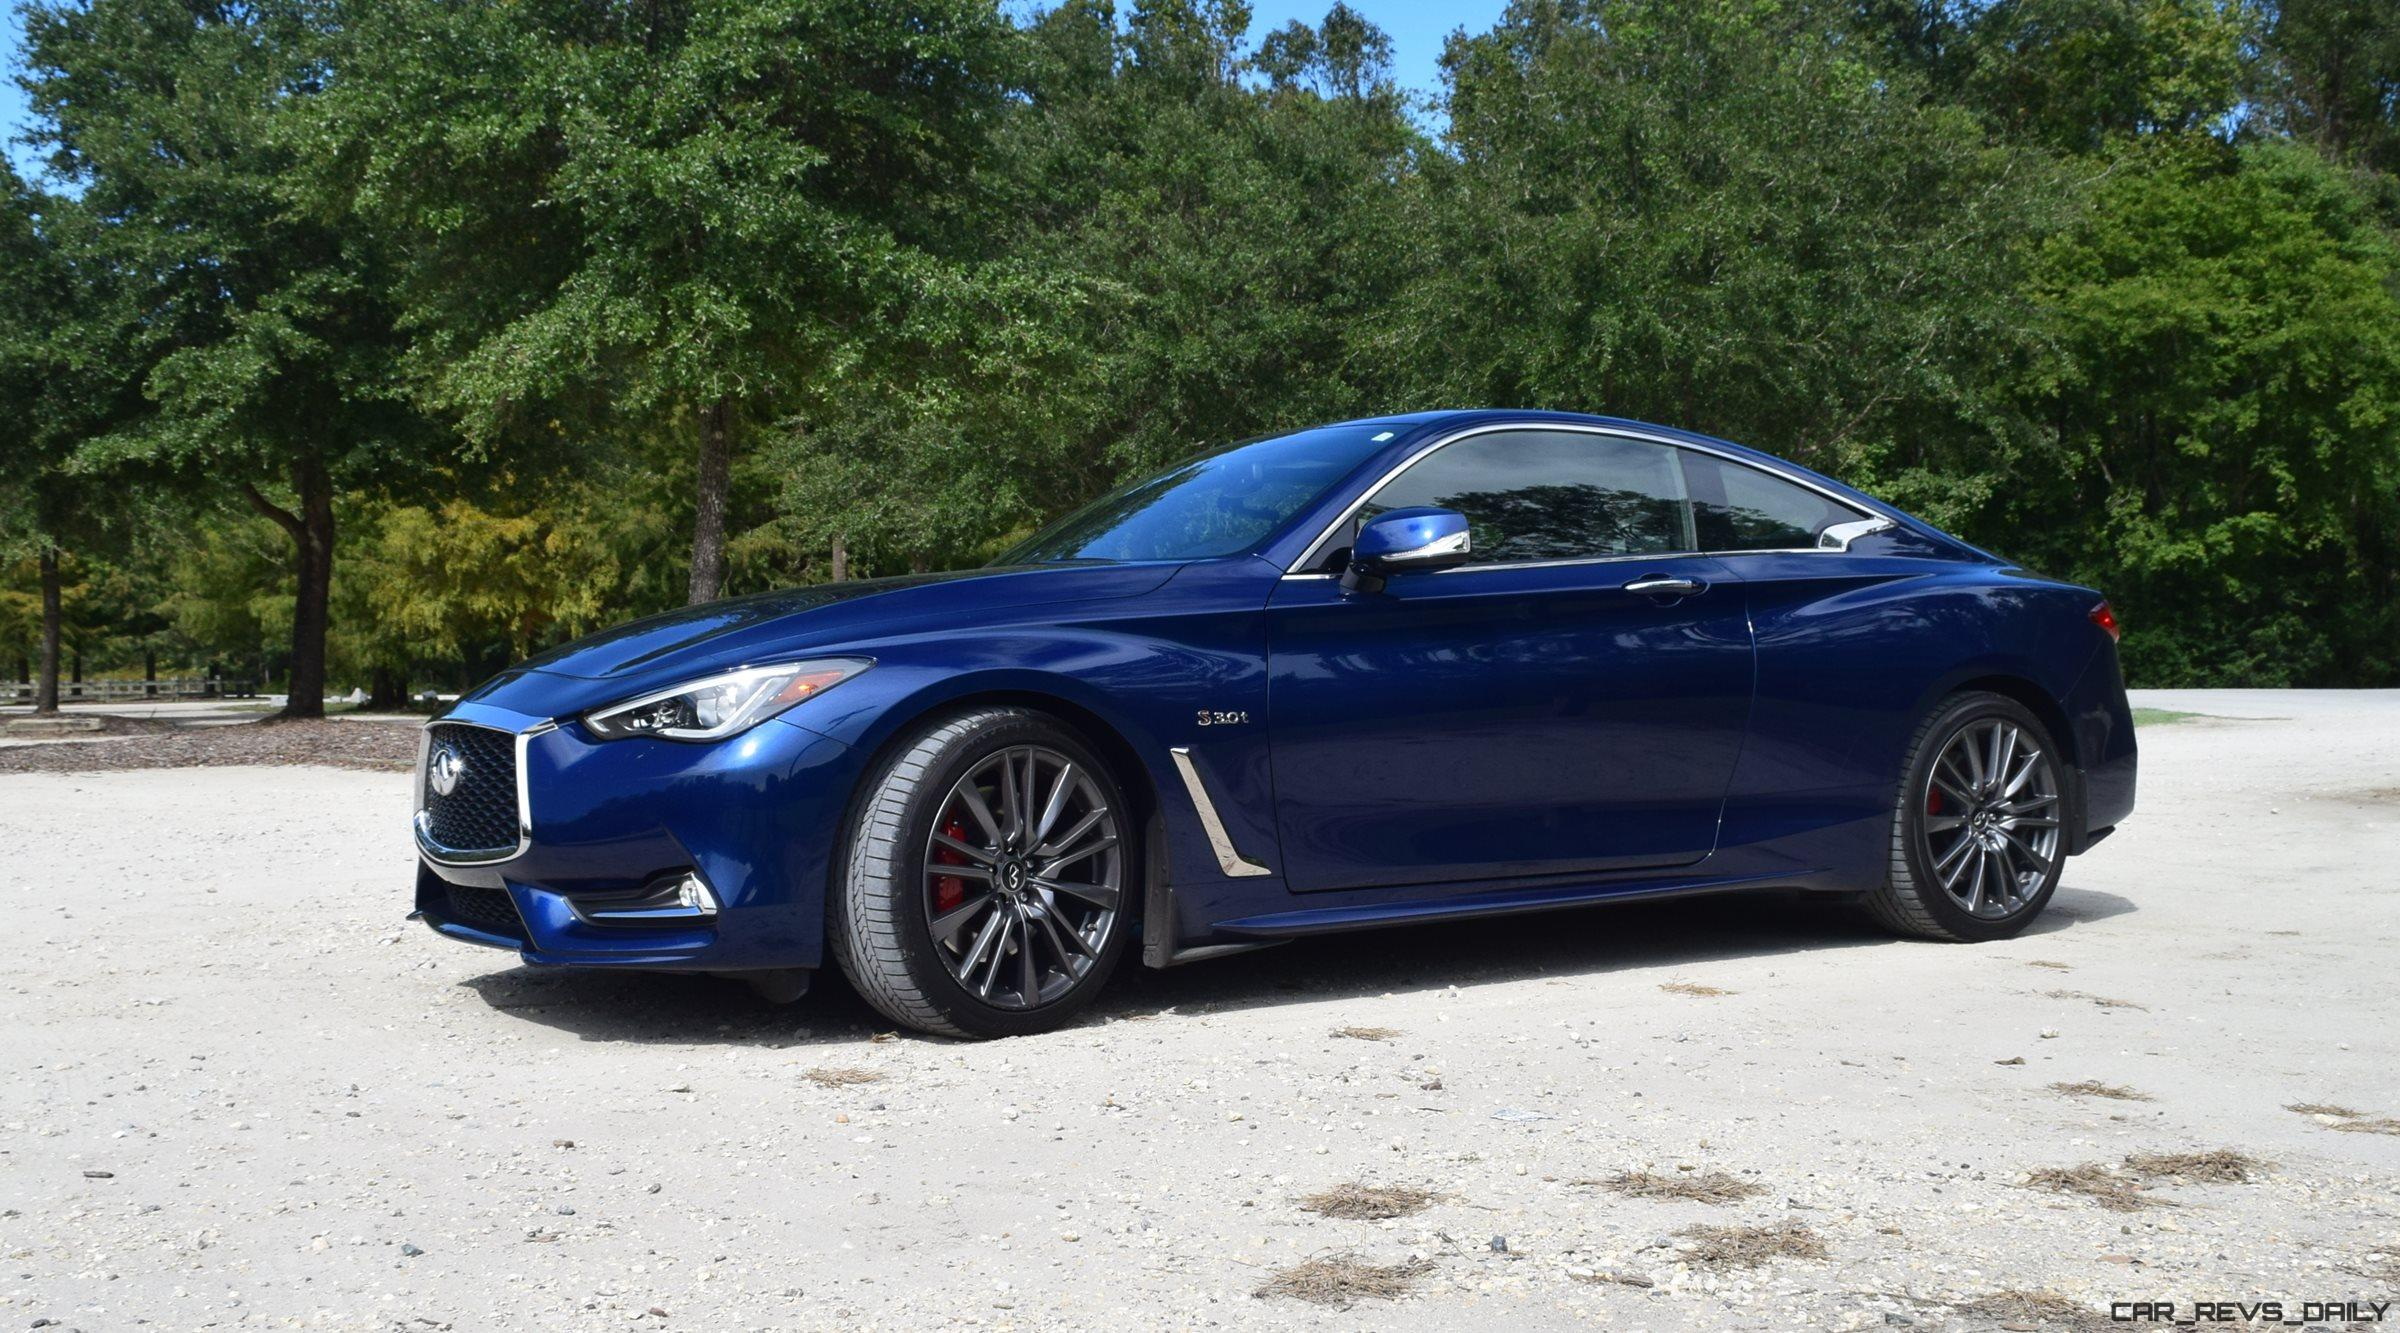 2017 infiniti q60 red sport 400 road test review drive videos car shopping. Black Bedroom Furniture Sets. Home Design Ideas